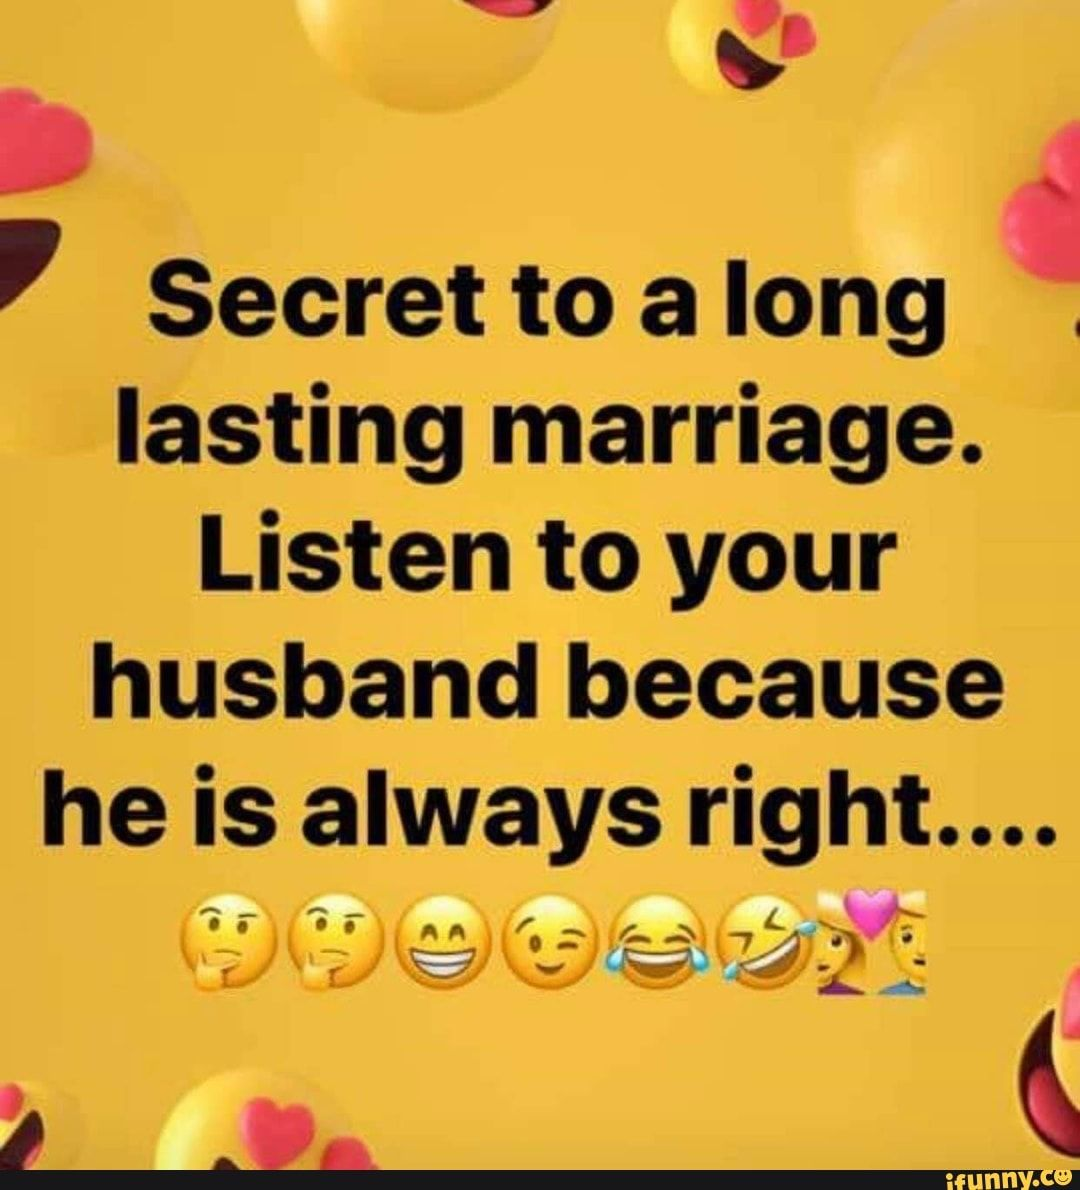 Secret To A Long Lasting Marriage Listen To Your Husband Because He Is Always Right Ifunny Real Life Quotes Funny Quotes Listening To You